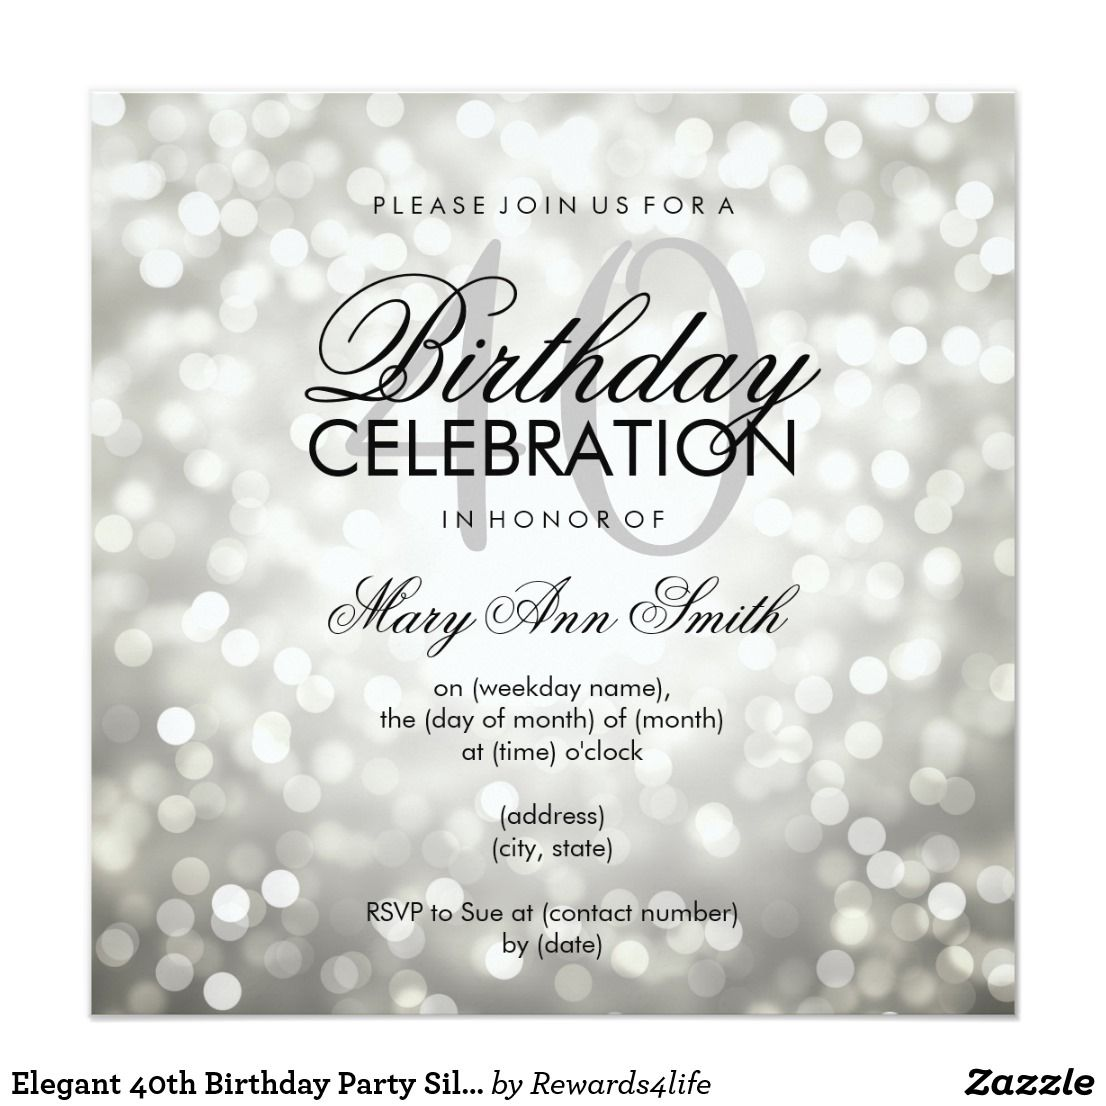 Elegant 40th Birthday Party Silver Glitter Lights Card Invitation Template Featuring And Sparkles